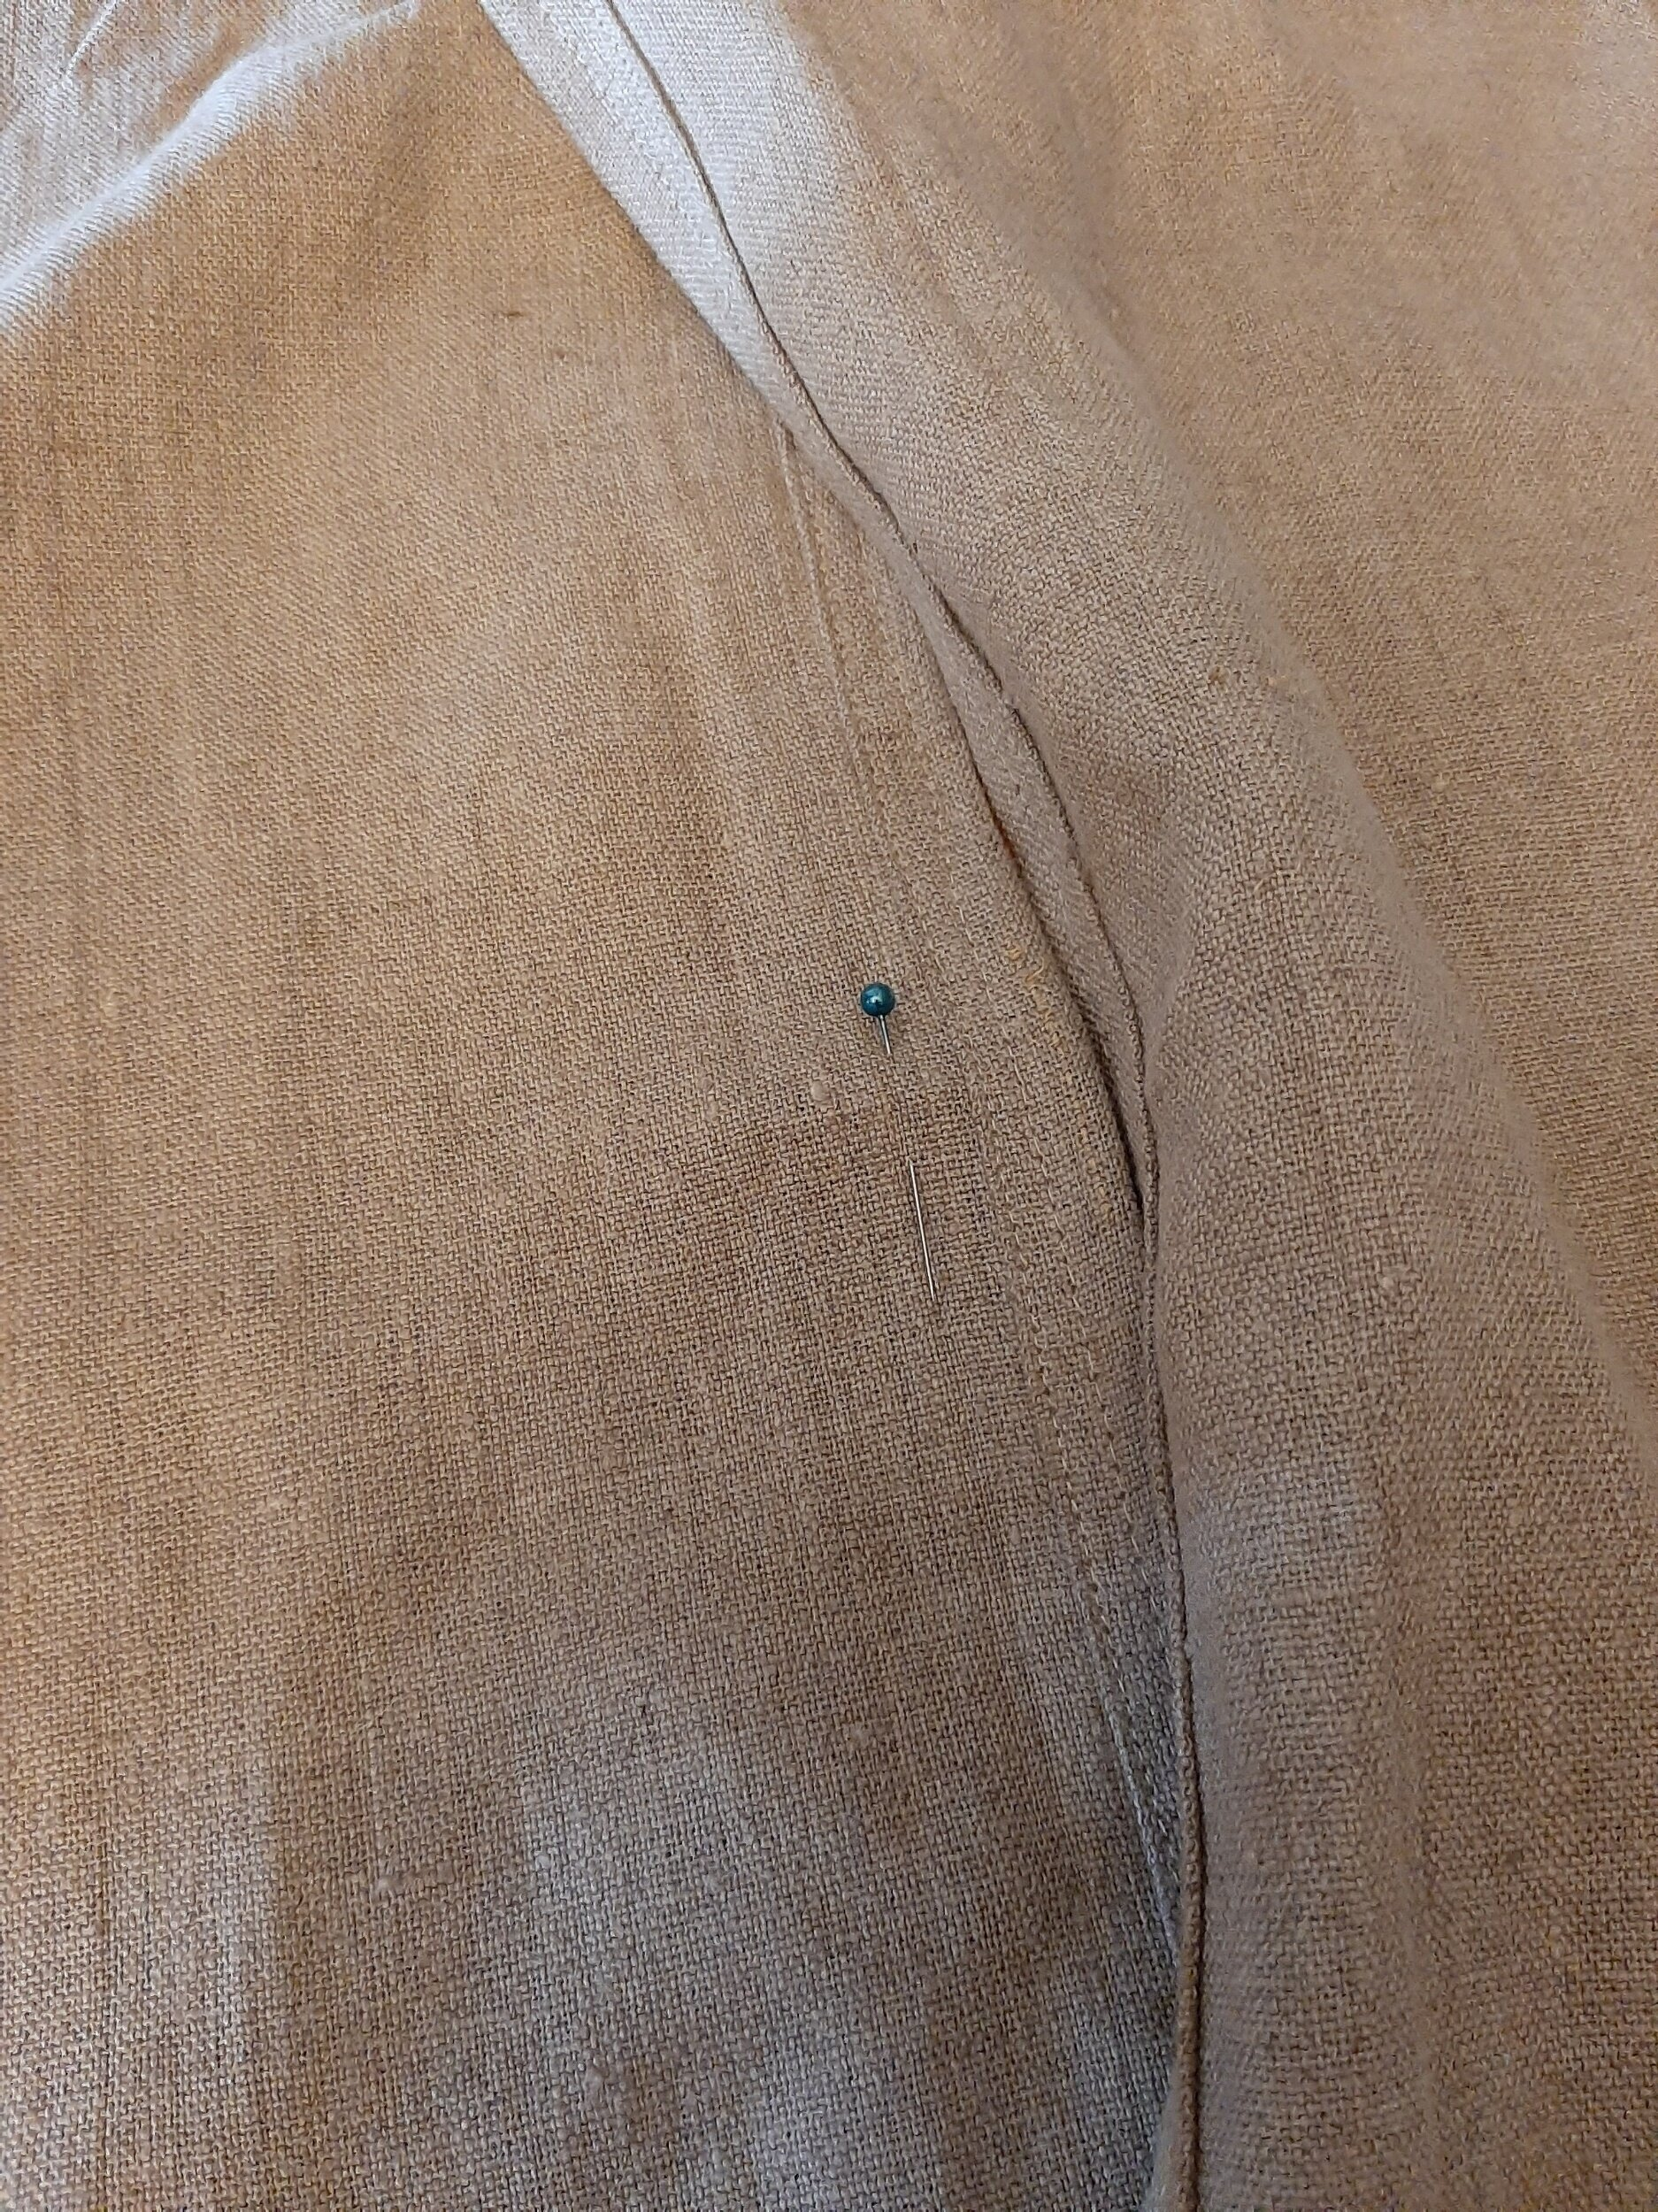 pin marking the middle of the back